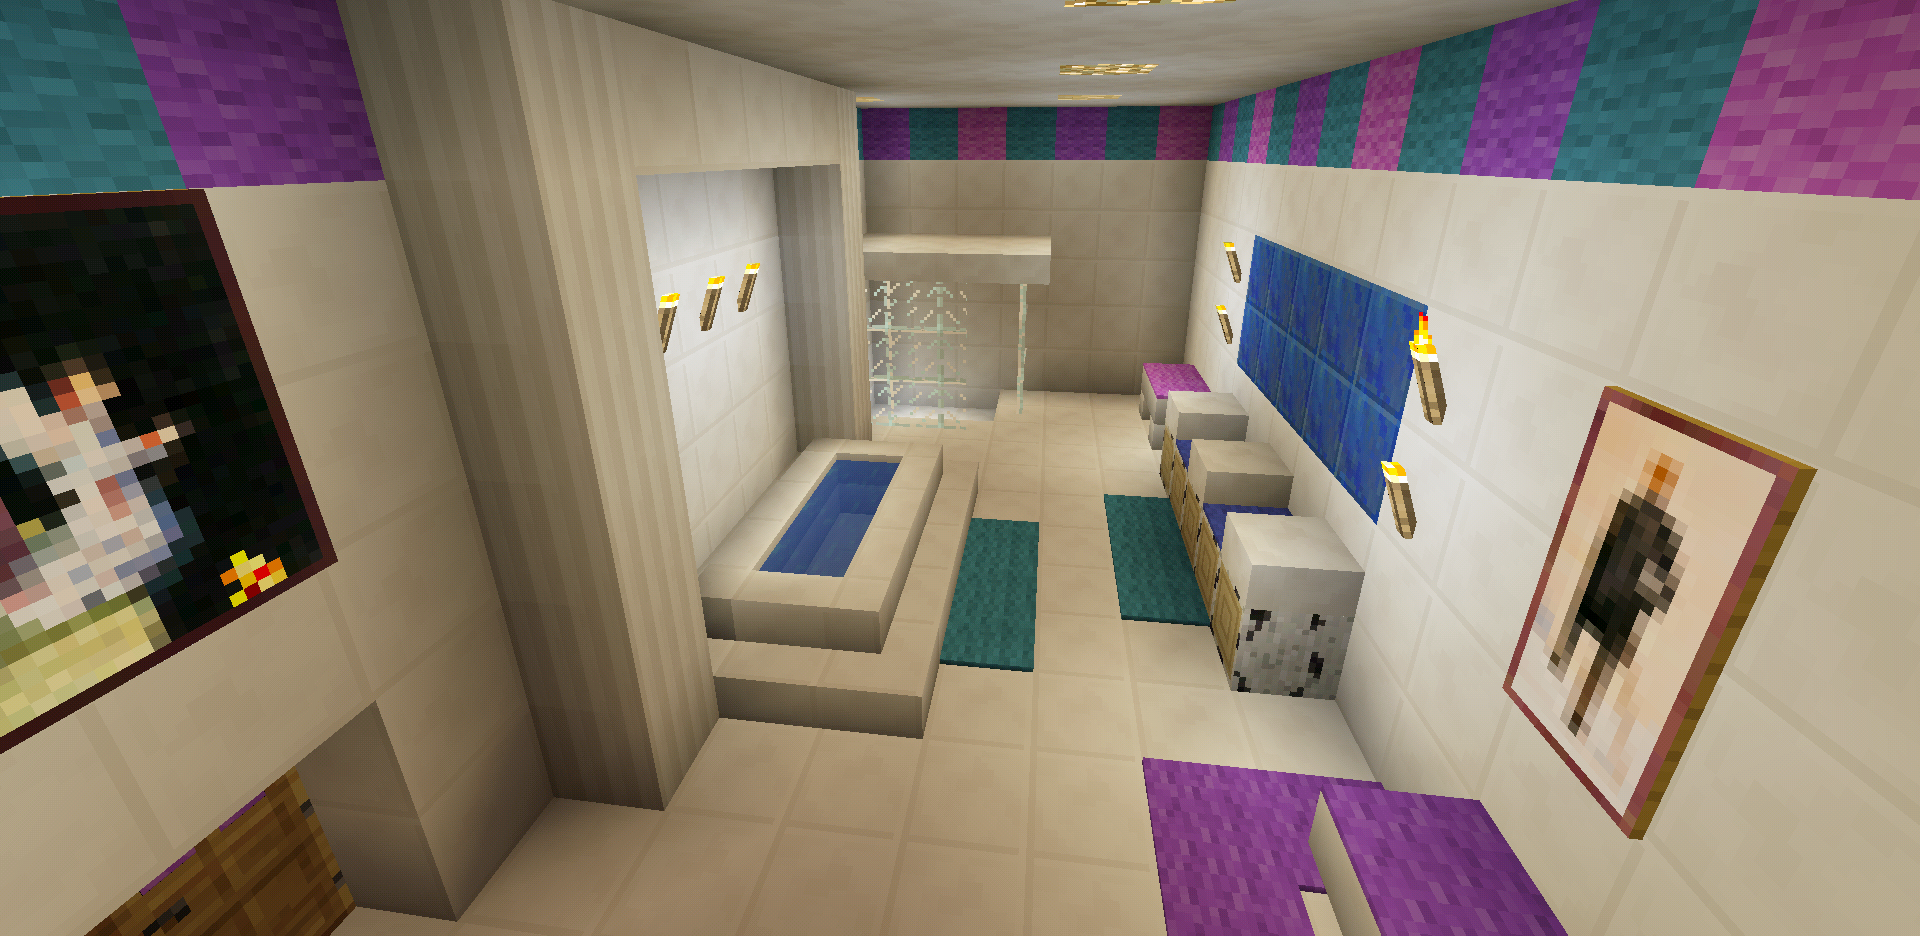 minecraft bathroom pink girl wallpaper wall design shower sink bath tub toilet - Bathroom Ideas Minecraft